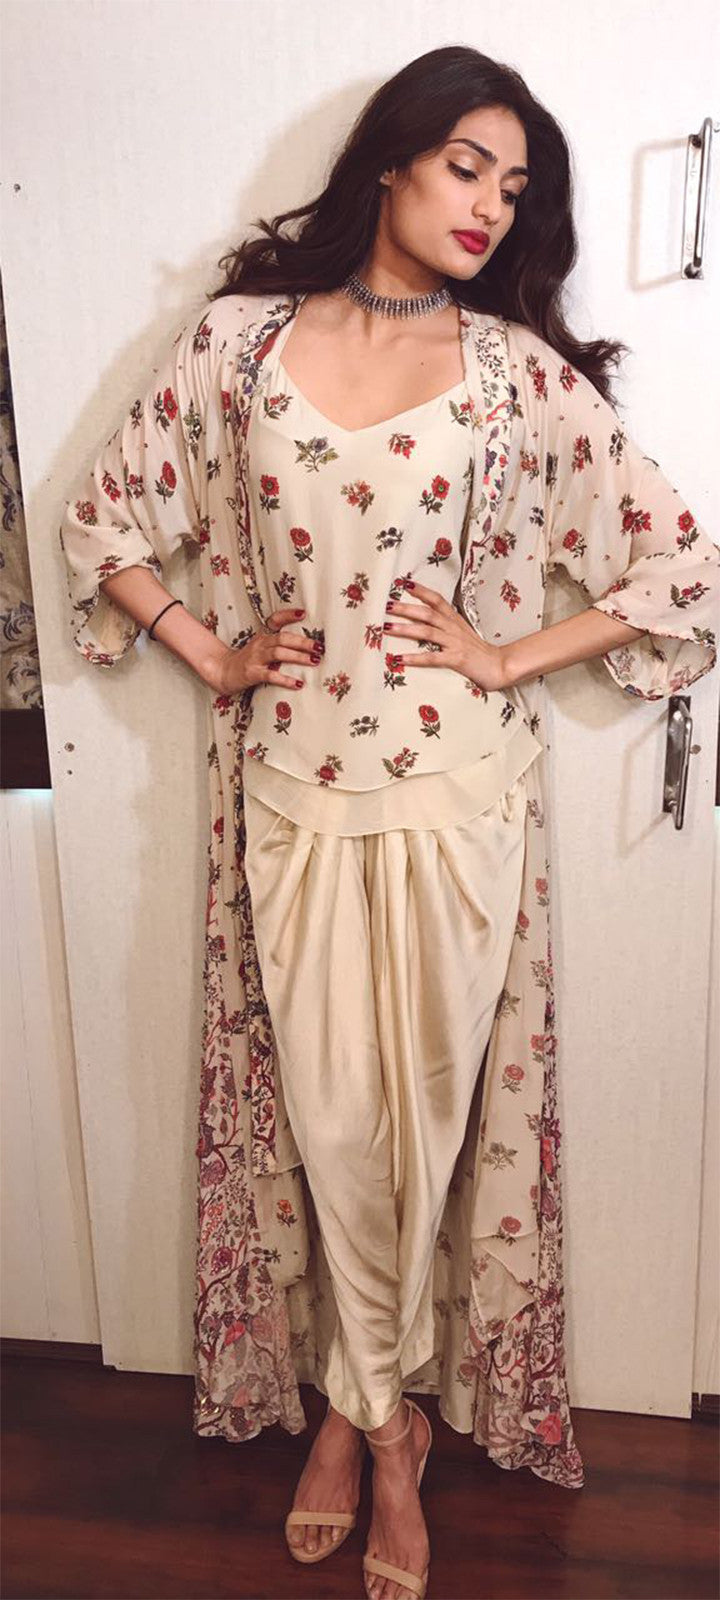 Athiya Shetty looked stylish in Floral outfit From Nikasha